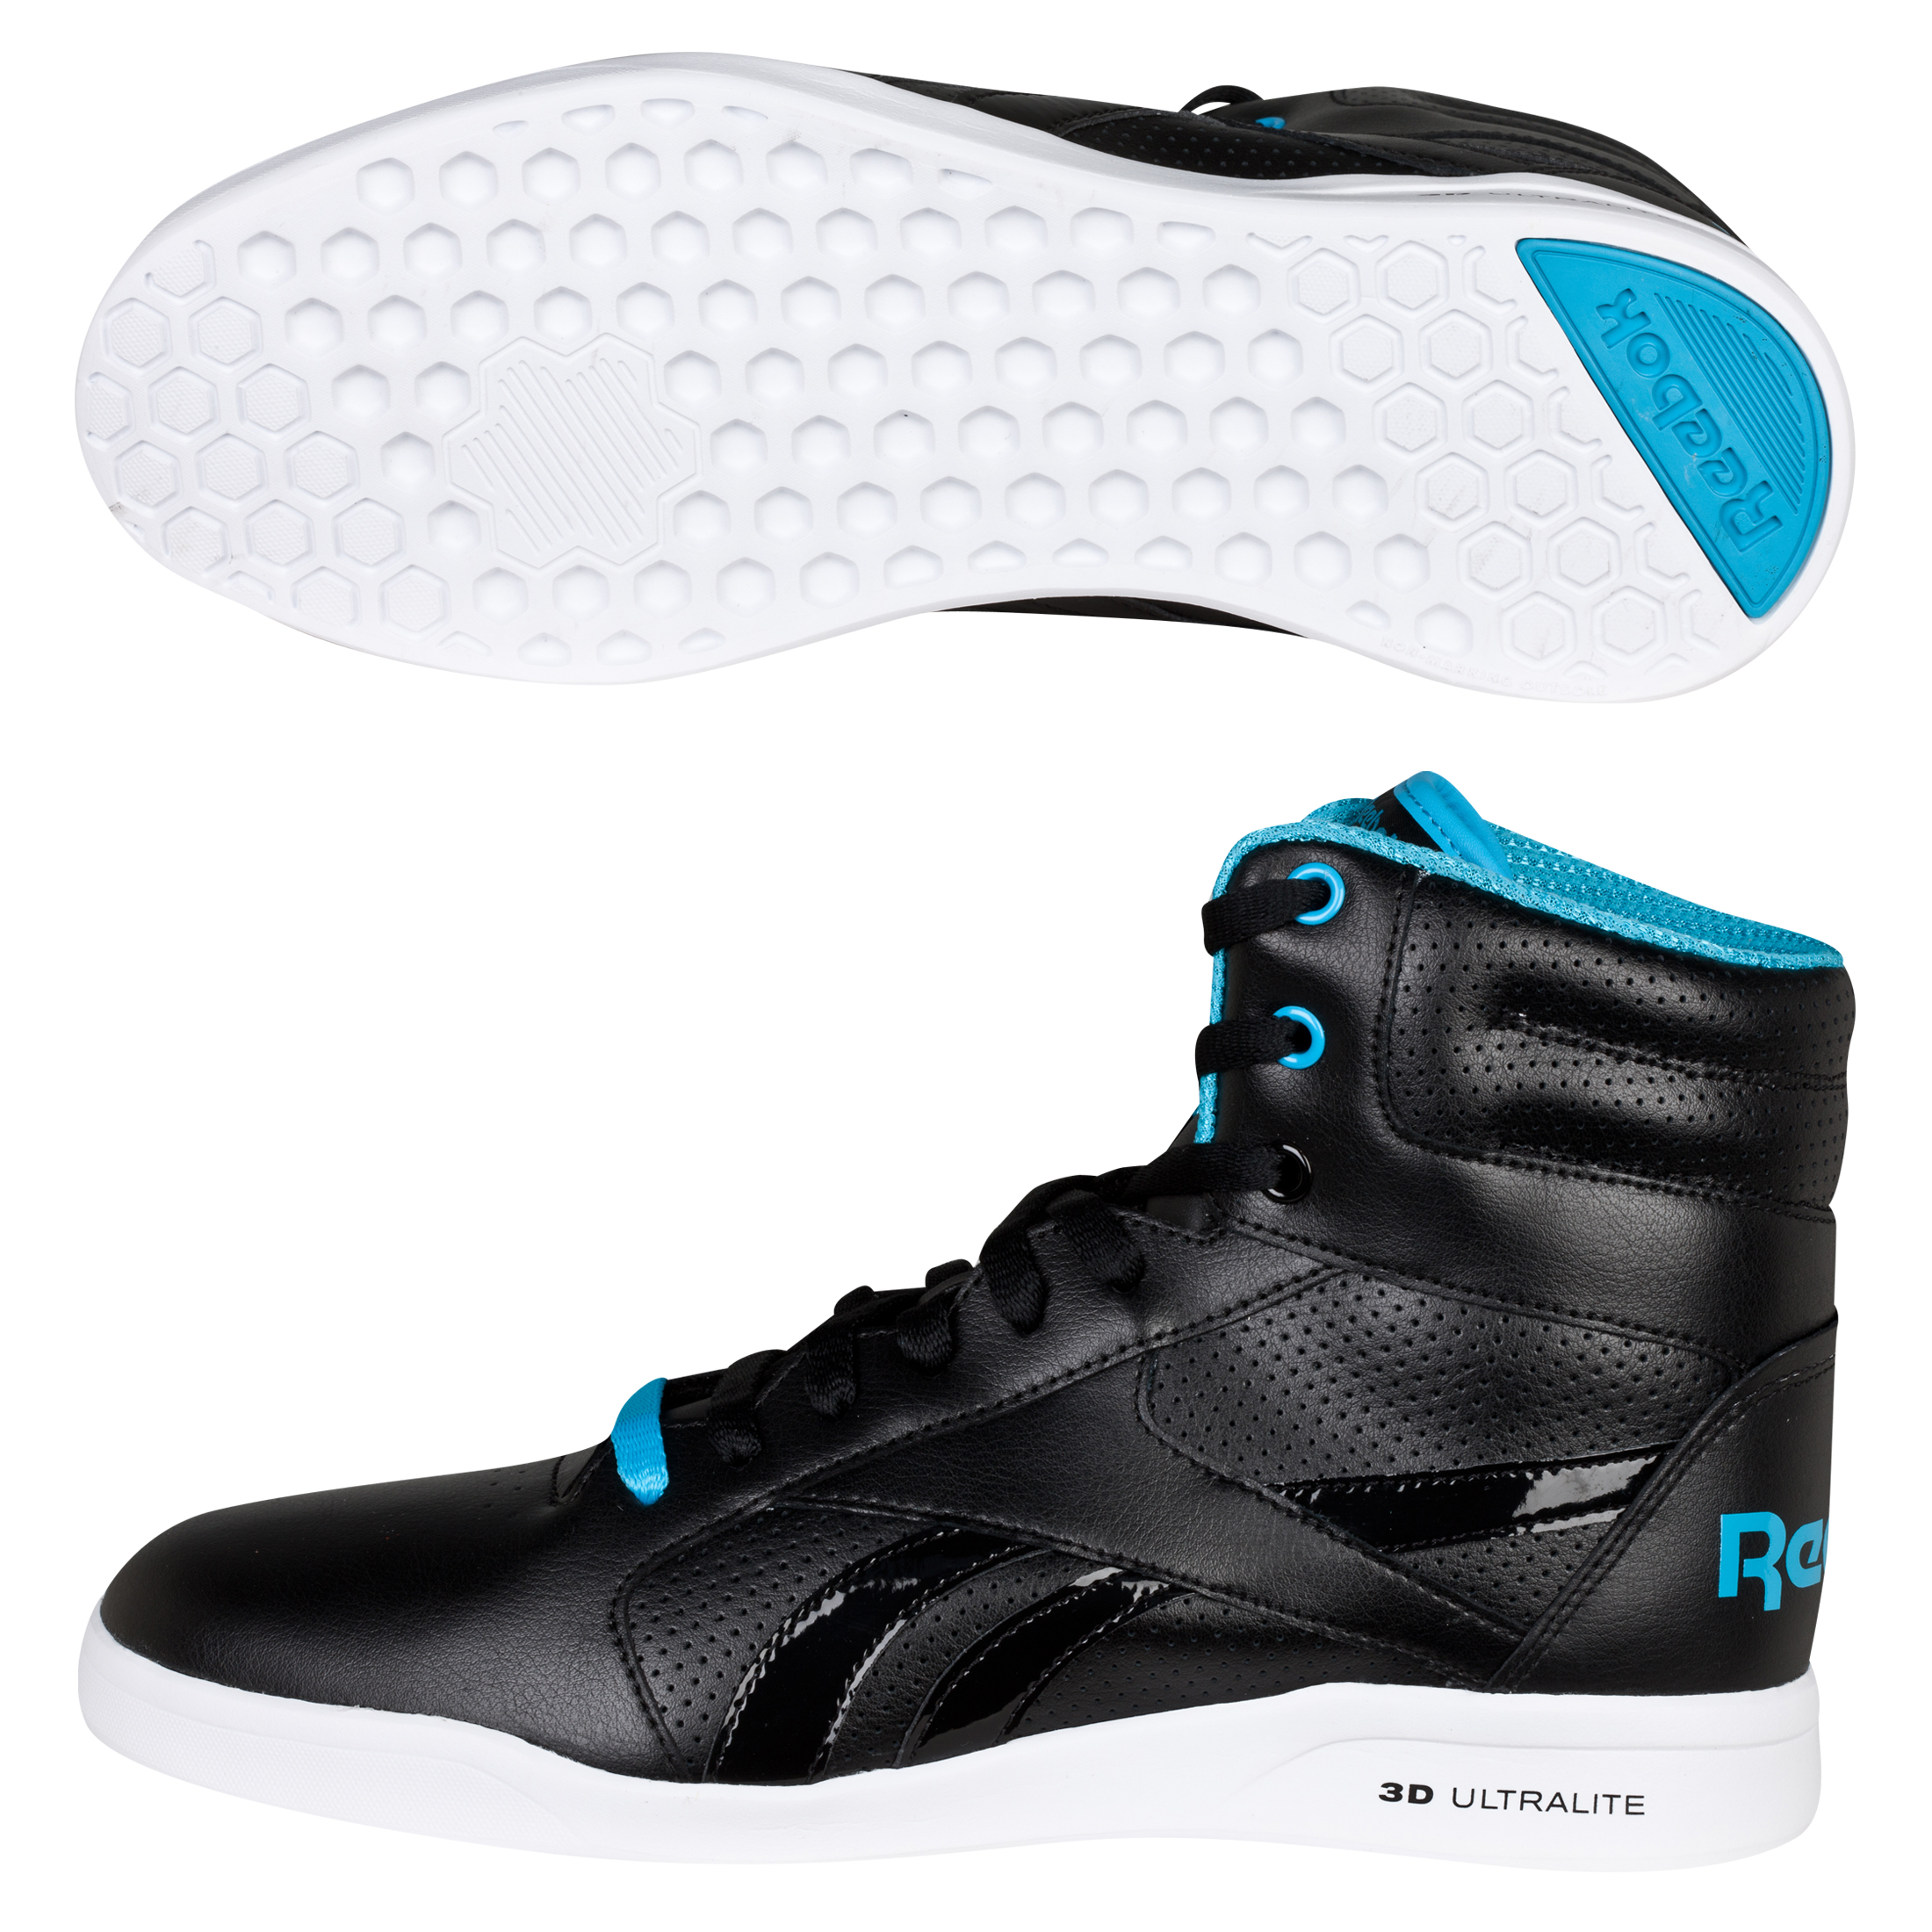 Reebok SL Ultralite Hi Trainers - Black/Buzz Blue/White